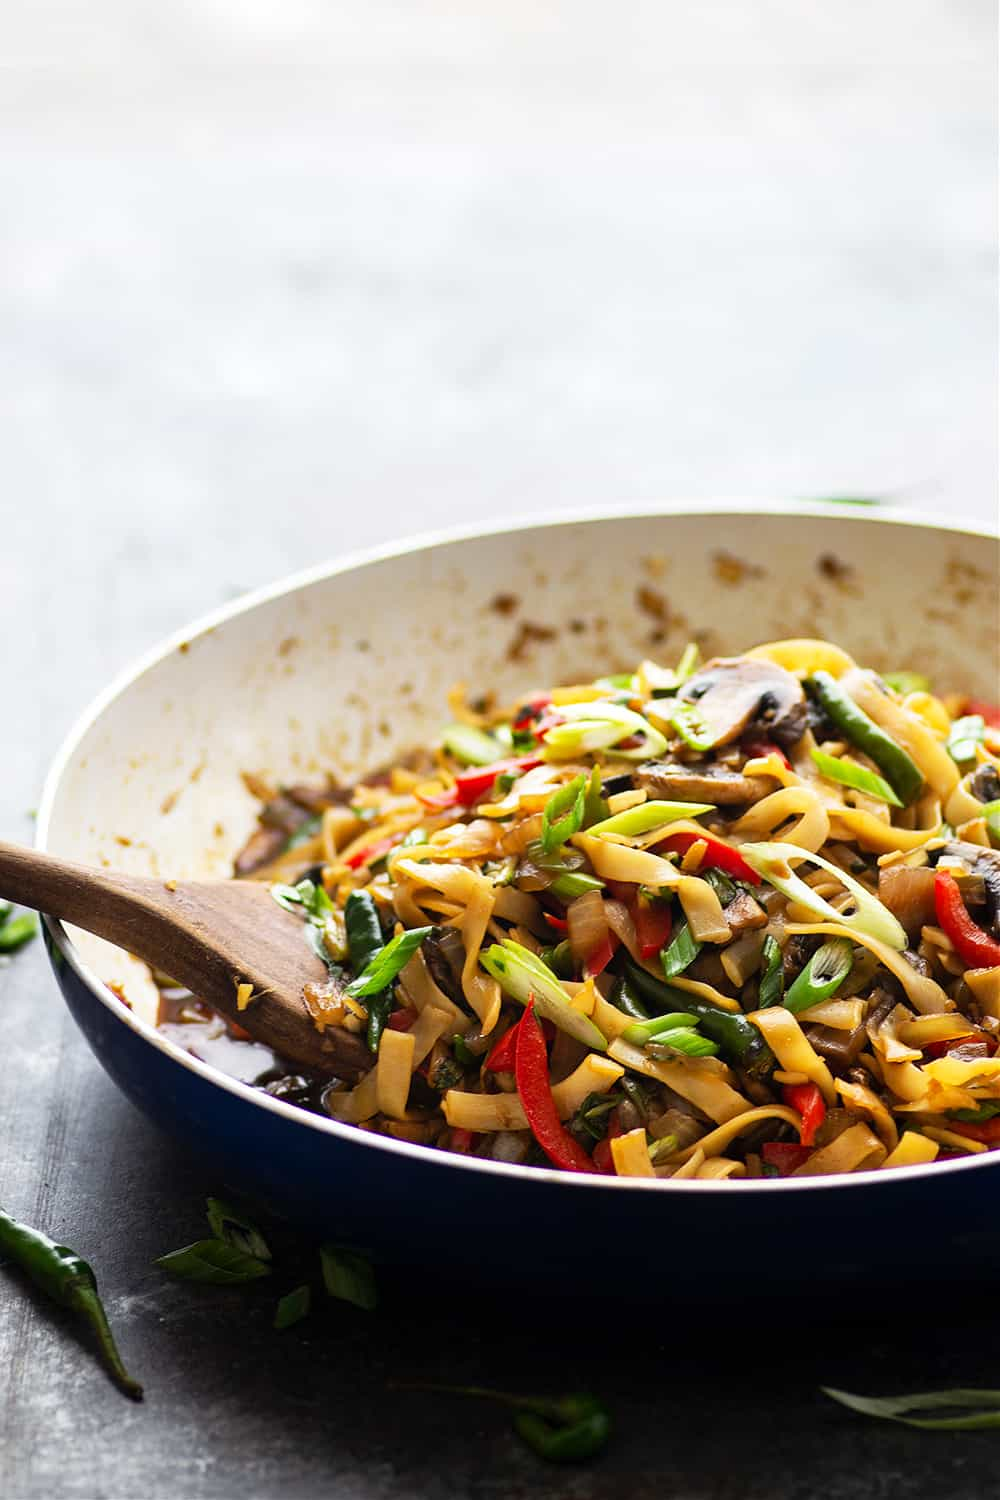 Packed with hearty veggies and a spicy soy sauce, these Thai drunken noodles are fast to whip up in 40 minutes and better than any restaurant! You wouldn't even know that these spicy noodles are vegan!